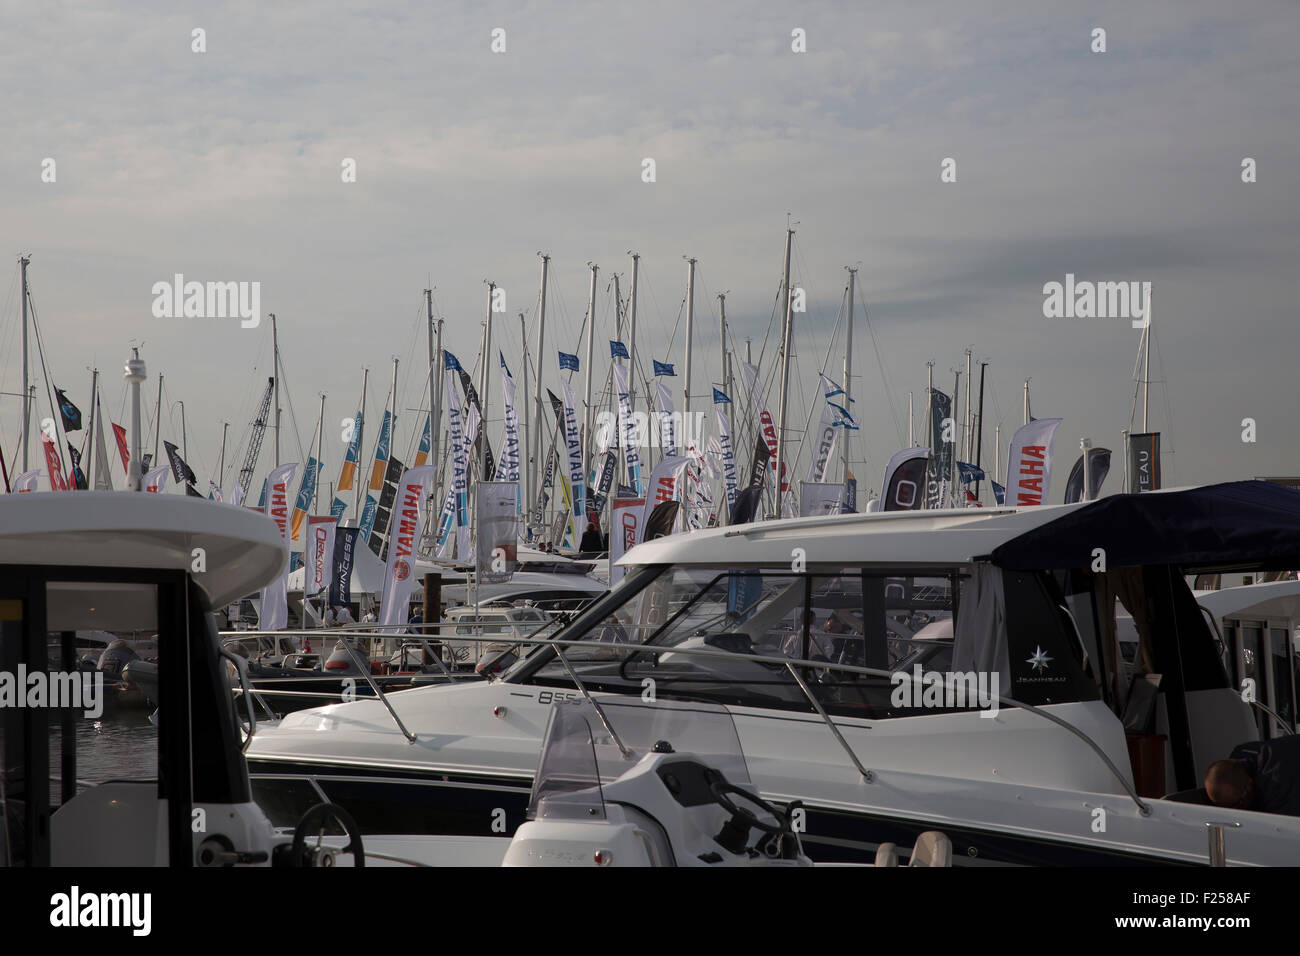 Southampton,UK,11th September 2015,Flags fly at the Southampton Boat show 2015 Britain's biggest boating festiva Stock Photo